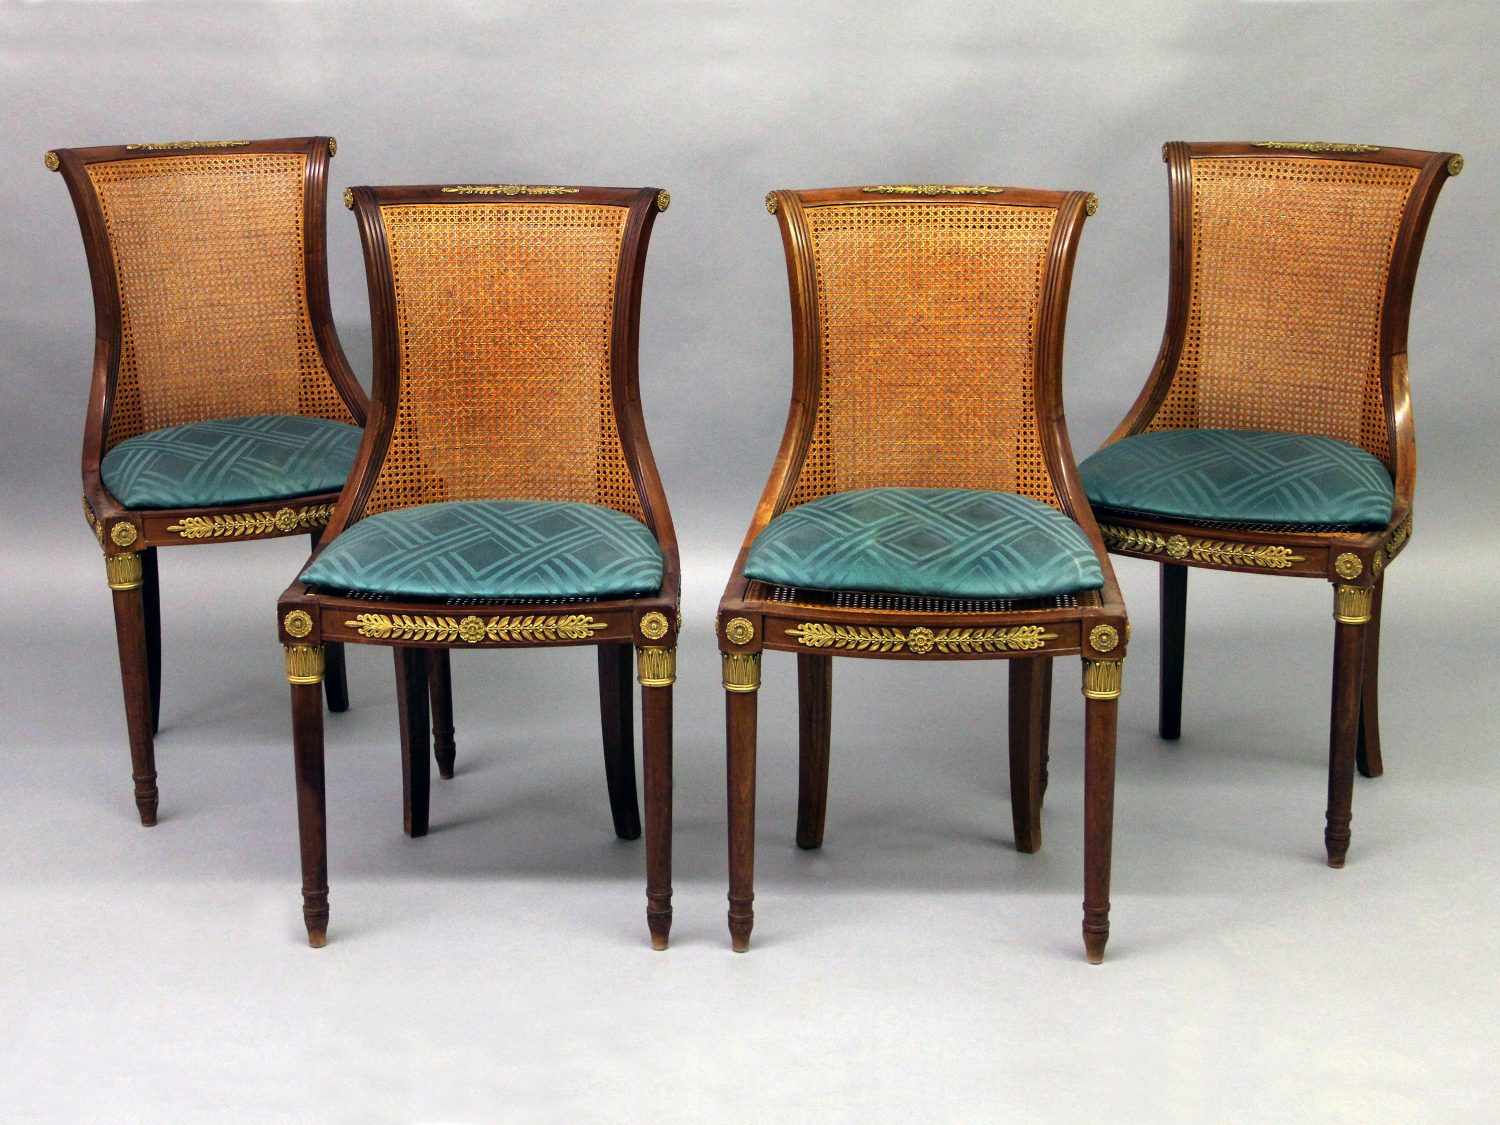 """Set of Four Curved """"S"""" Shaped Early 20th Century Antique Dining Room Chairs"""